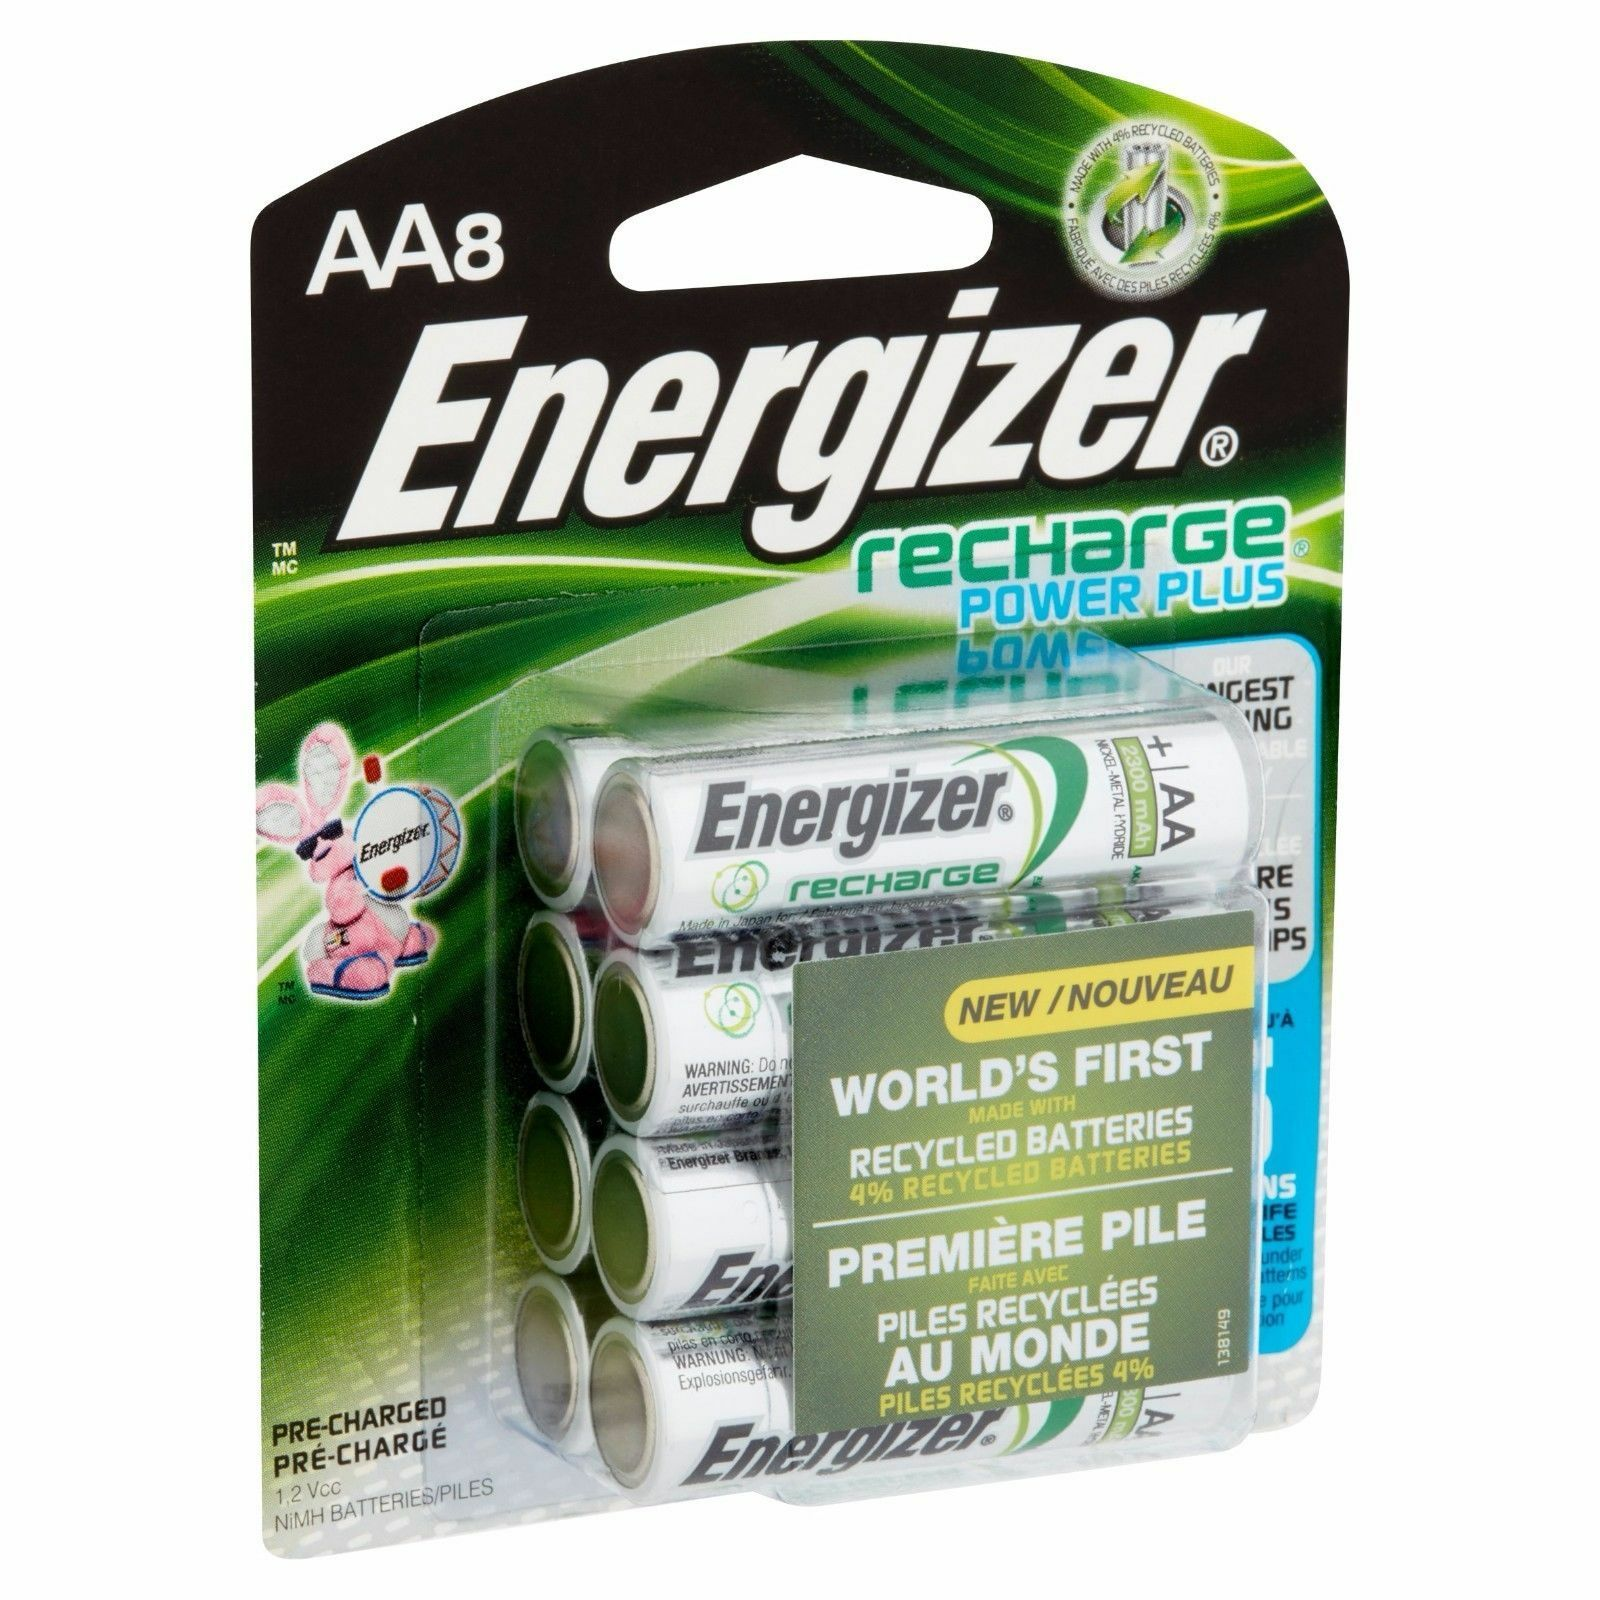 AA8 AA Energizer Rechargeable NiMH Batteries EXP 2021 8 Pack 2300mAh 1 Of 6FREE Shipping